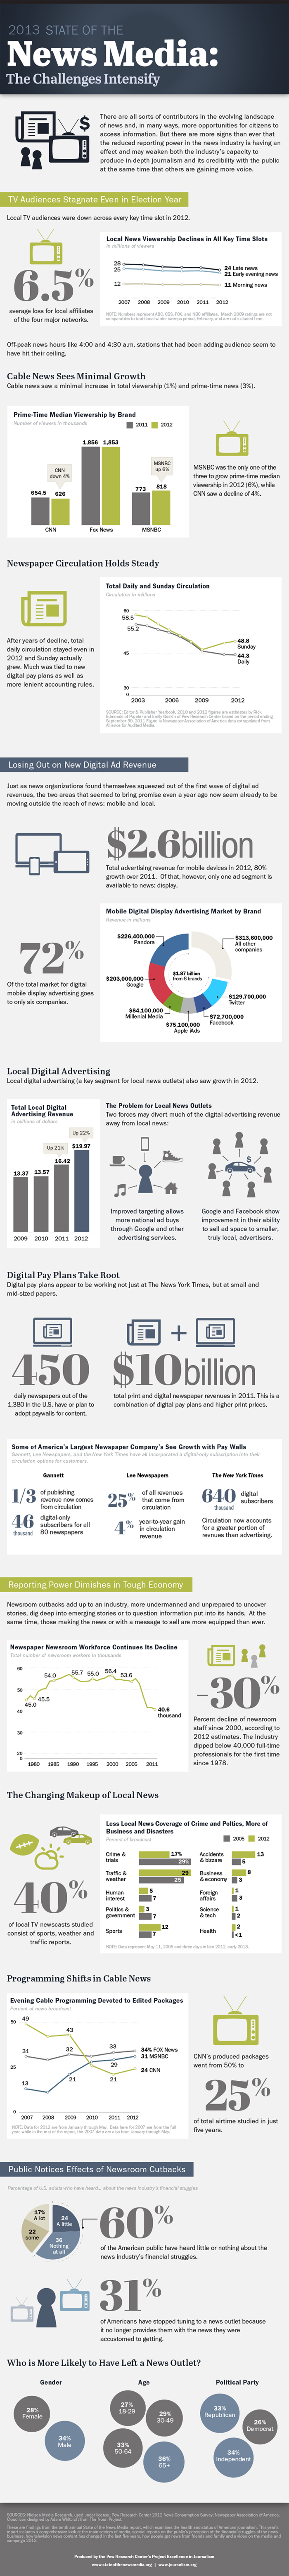 2013 State of the News Media: The Challenges Intensify Overview. #Infographic